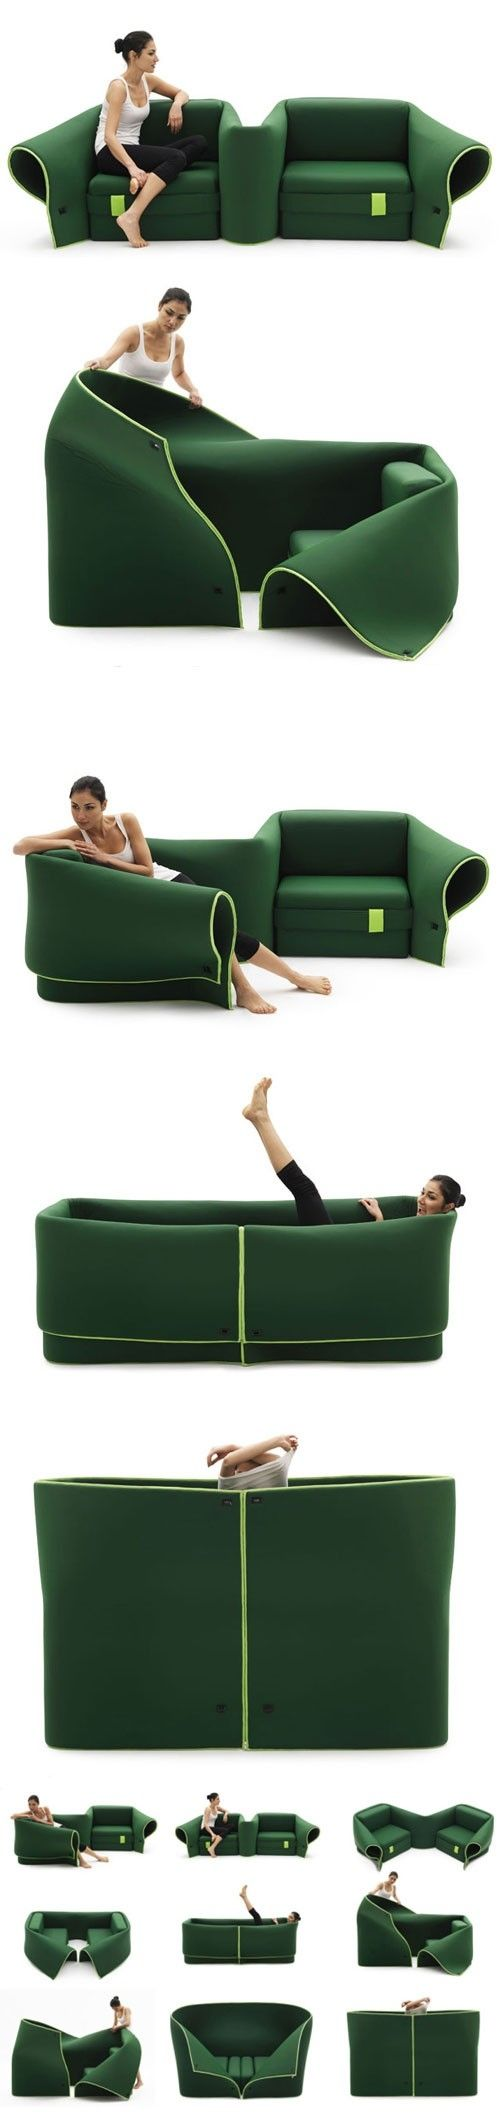 flex couch by Eclecticvv1